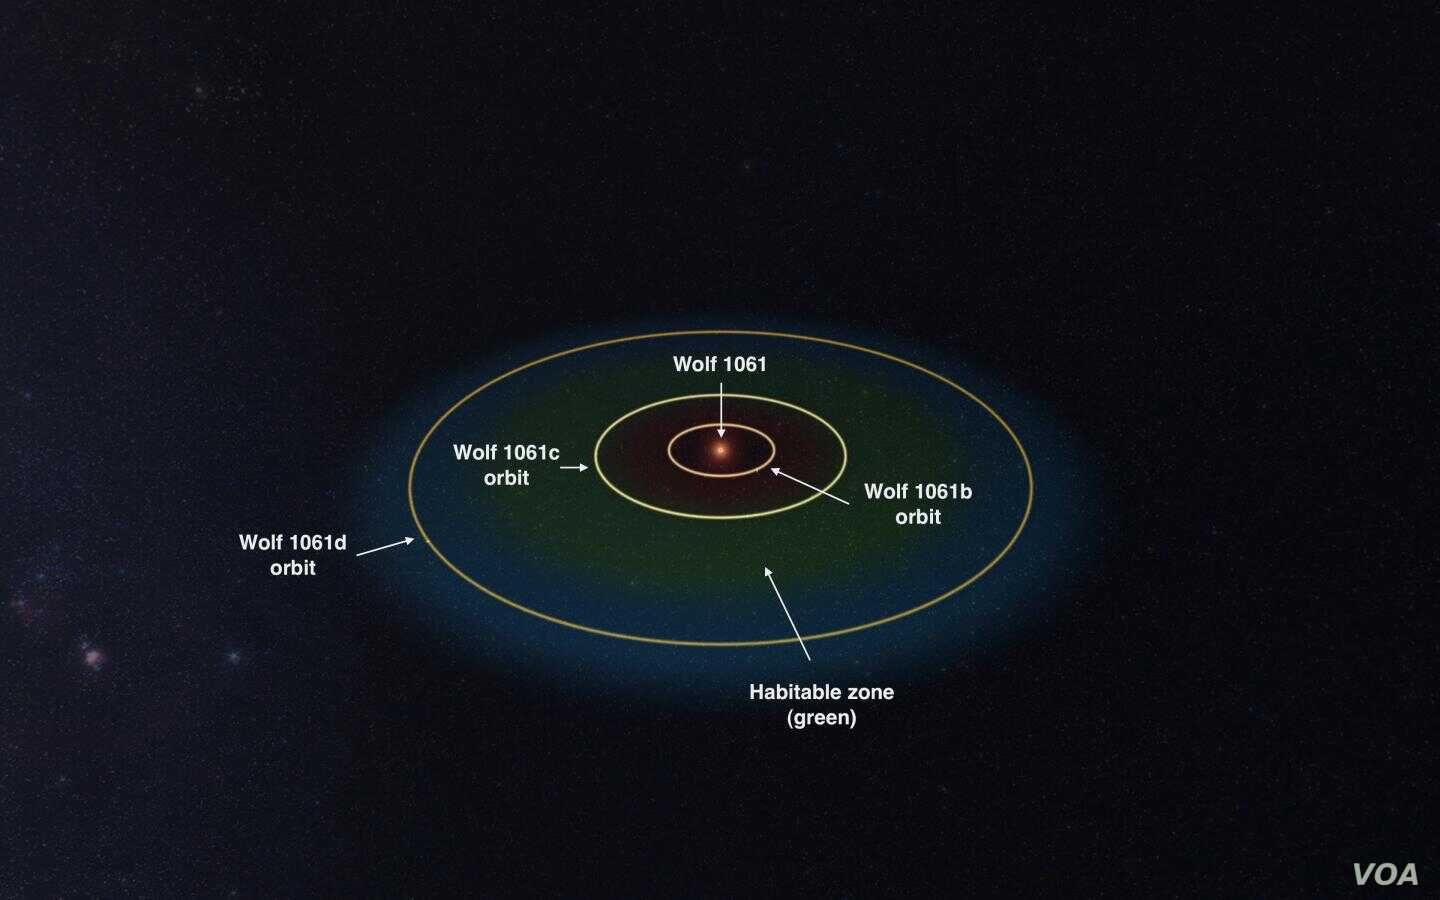 Potentially Earth-like Planet Found 14 Light Years Away